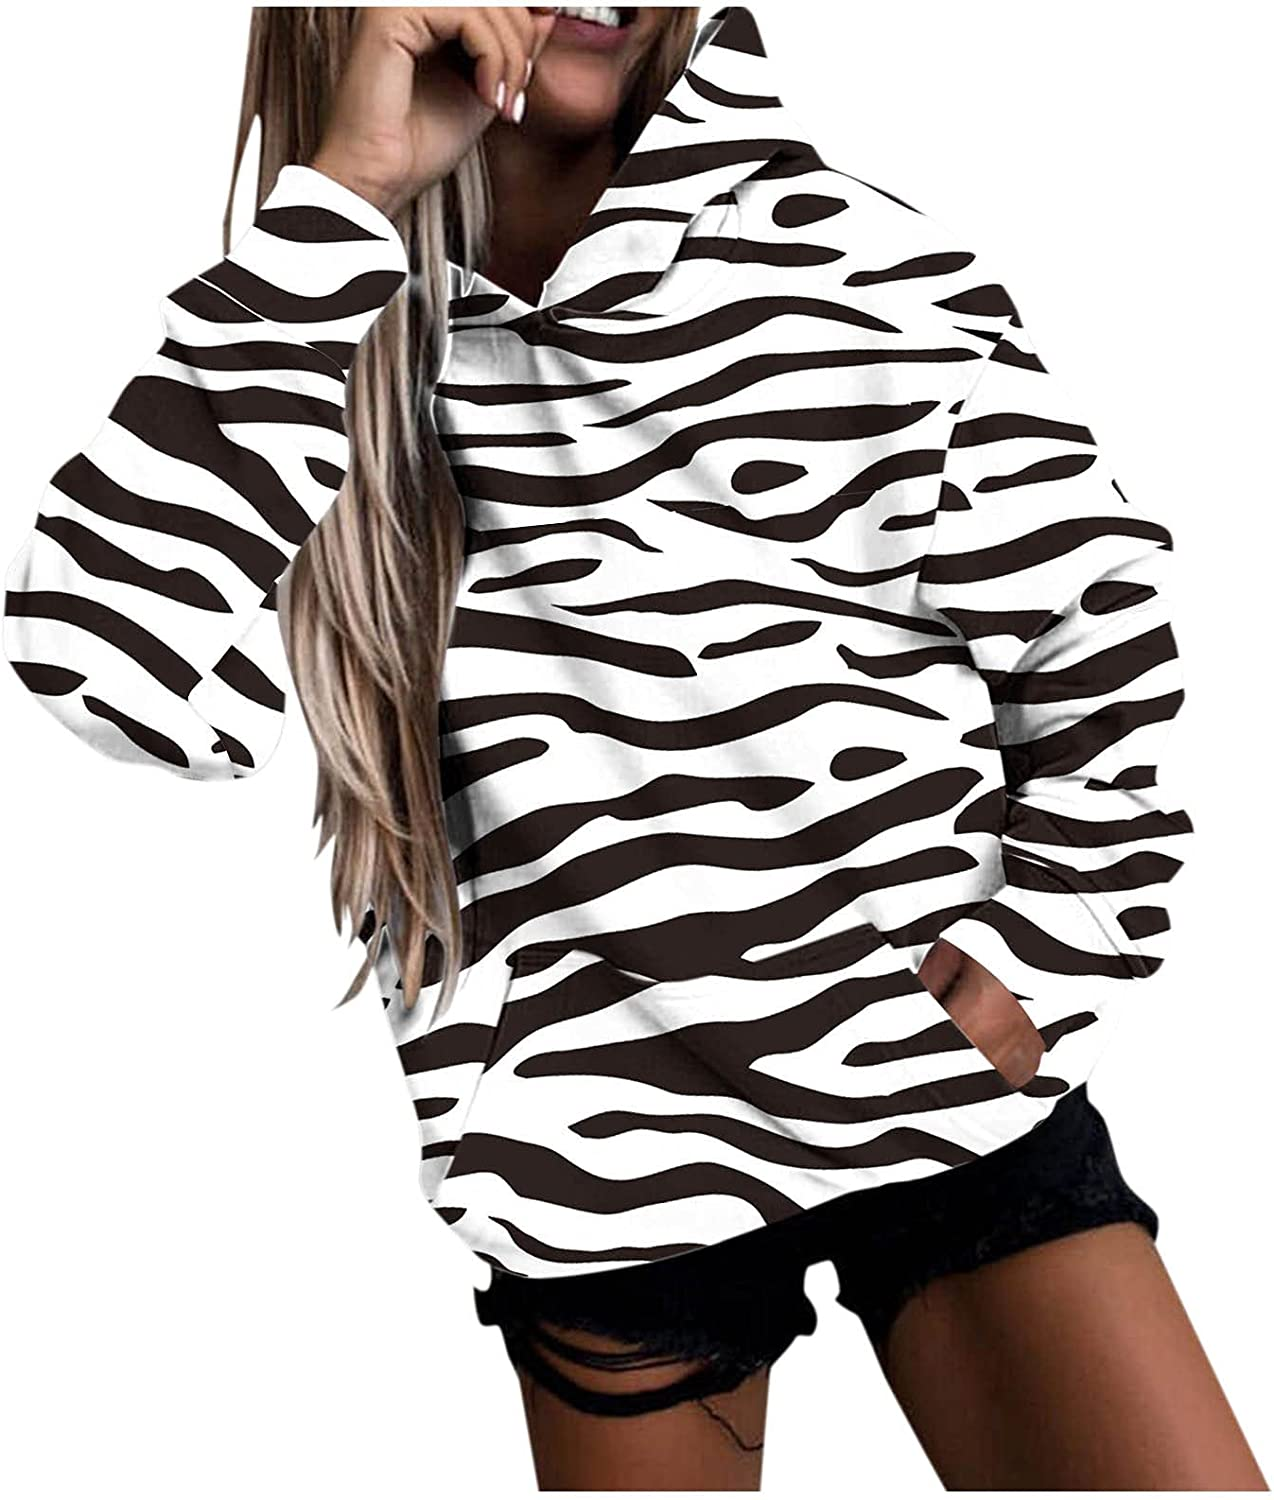 Hoodie for Women Pullover Fashion Leopard Colorful Pinted Long Sleeve Hooded Sweatshirt Blouse Tops